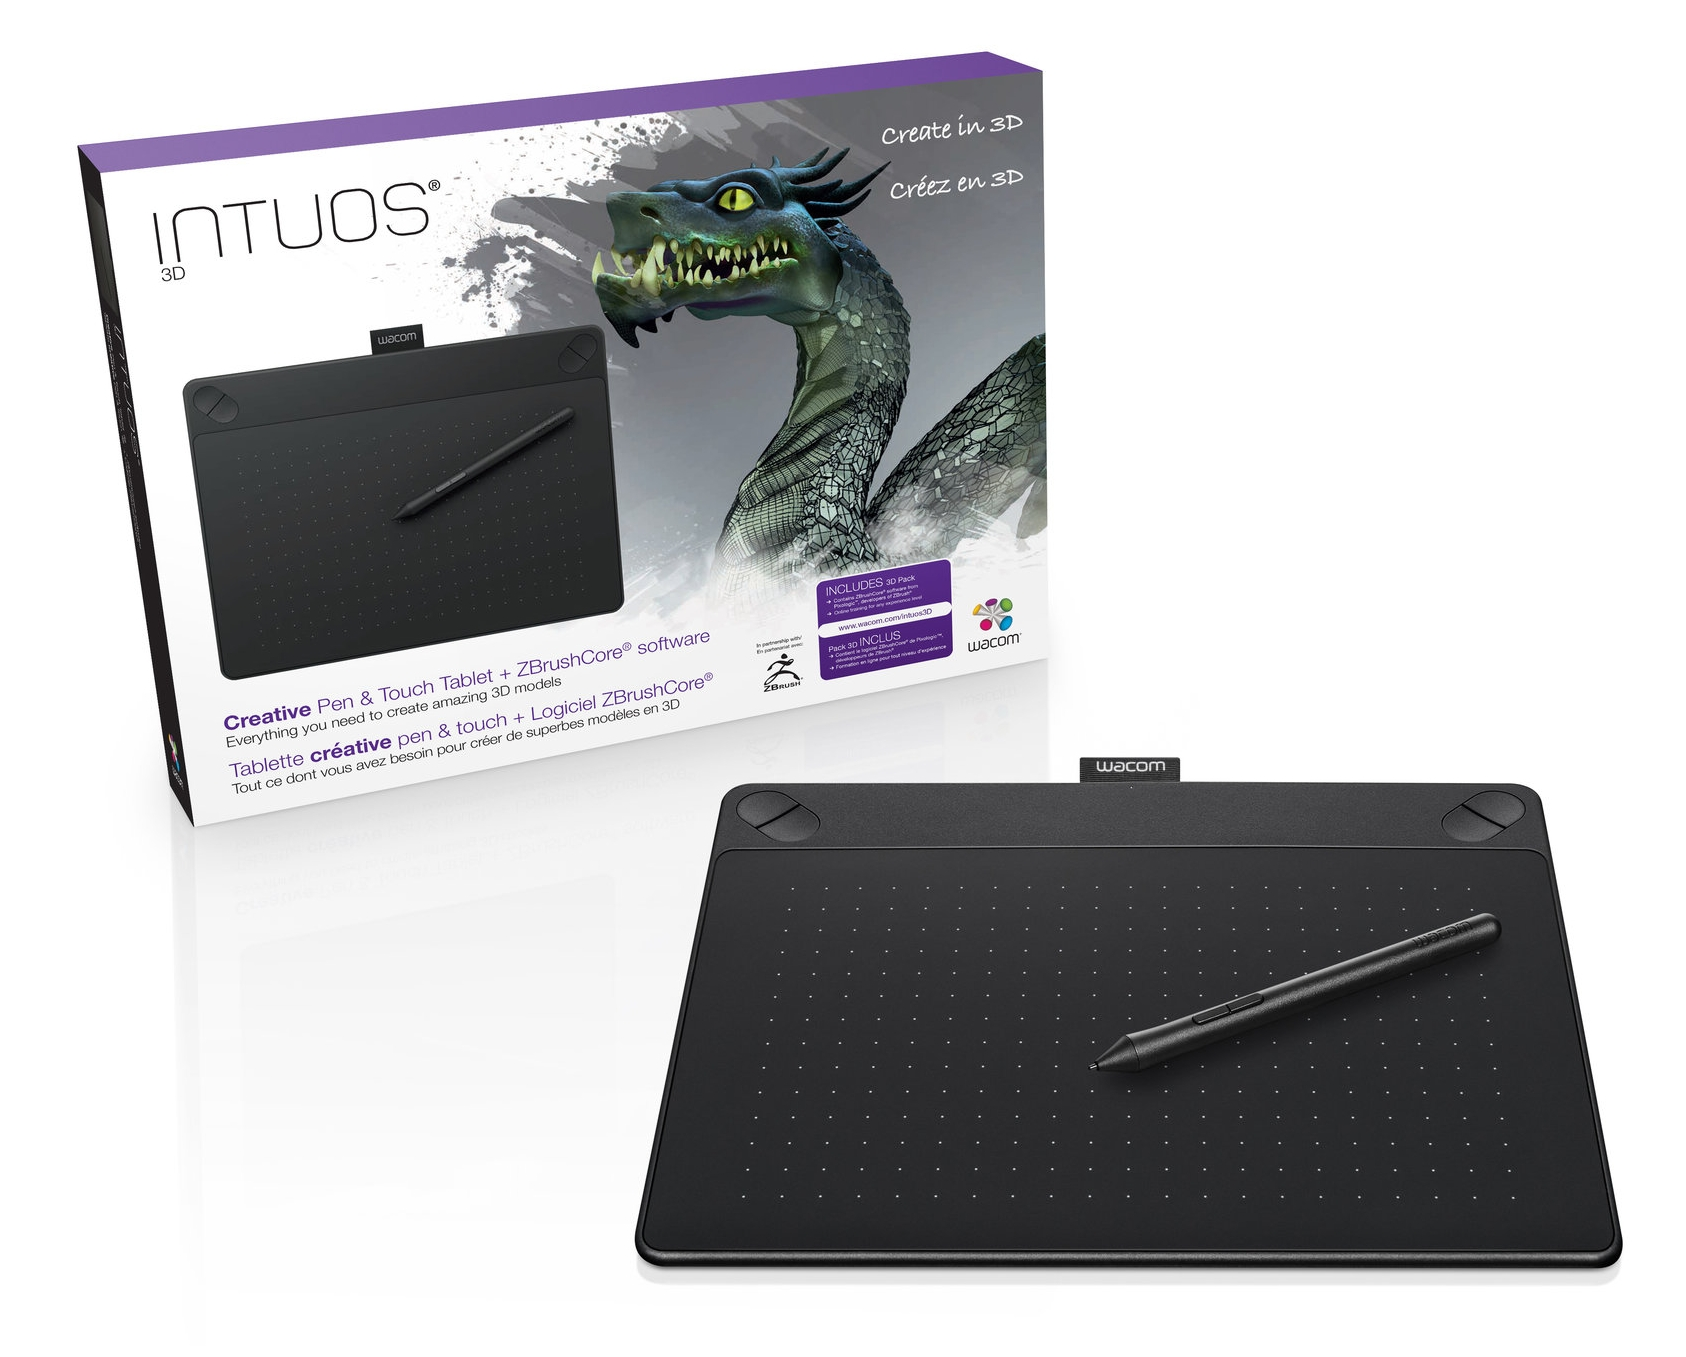 New Intuos 3D tablet bundles ZBrushCore — Surface Pro Artist